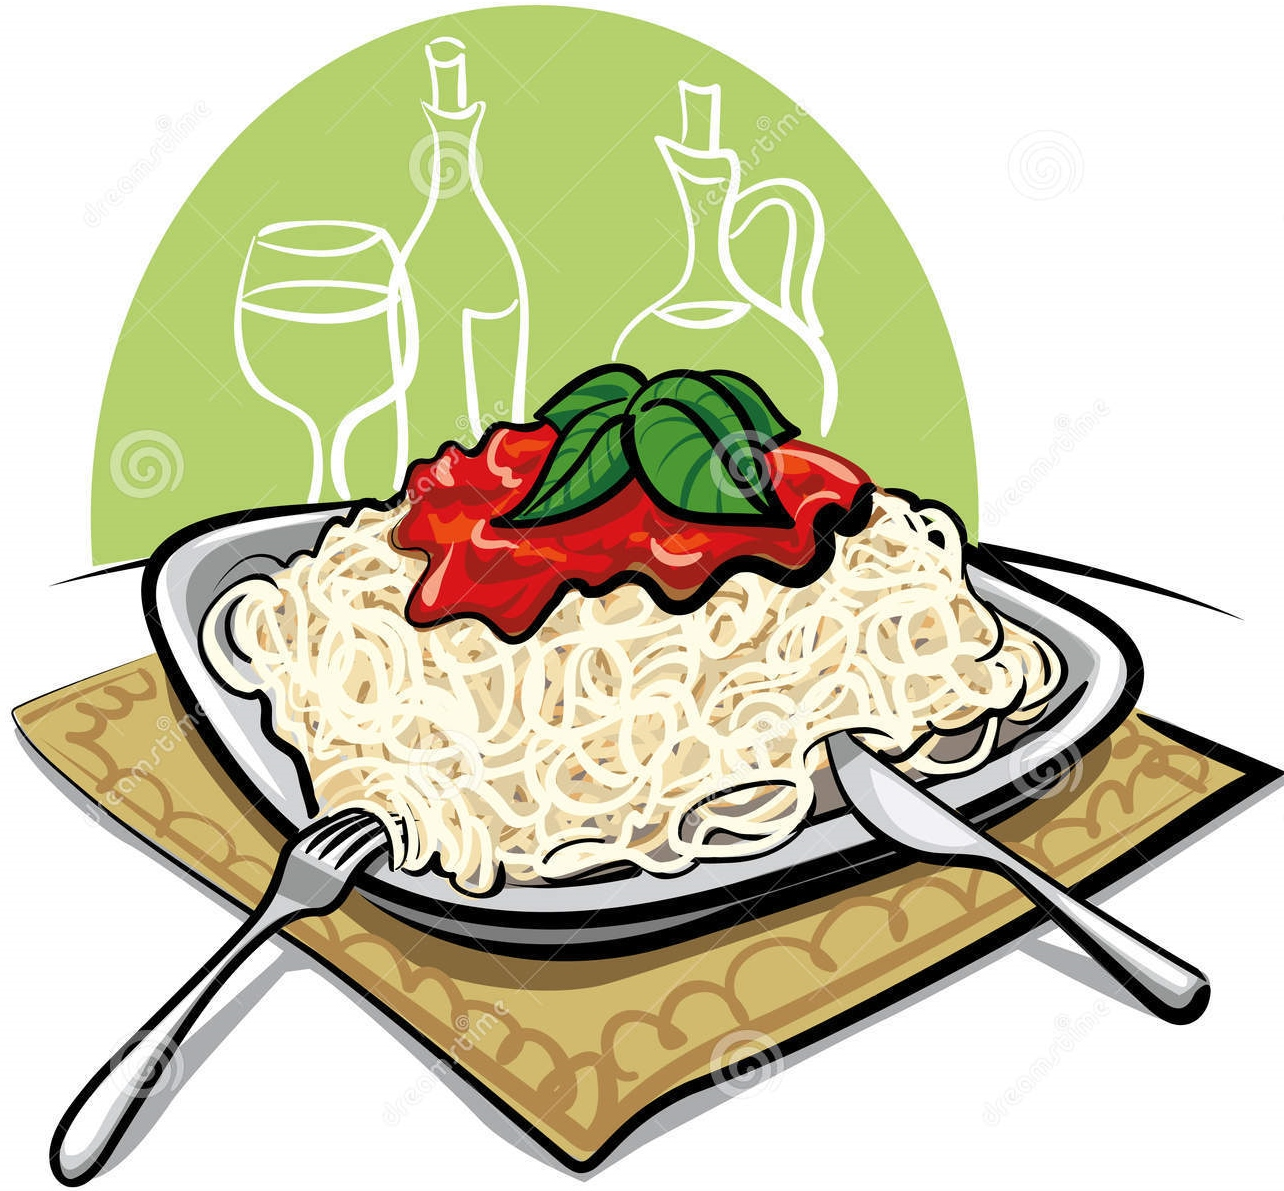 1284x1191 Clipart Images Of Pasta Dinner Food